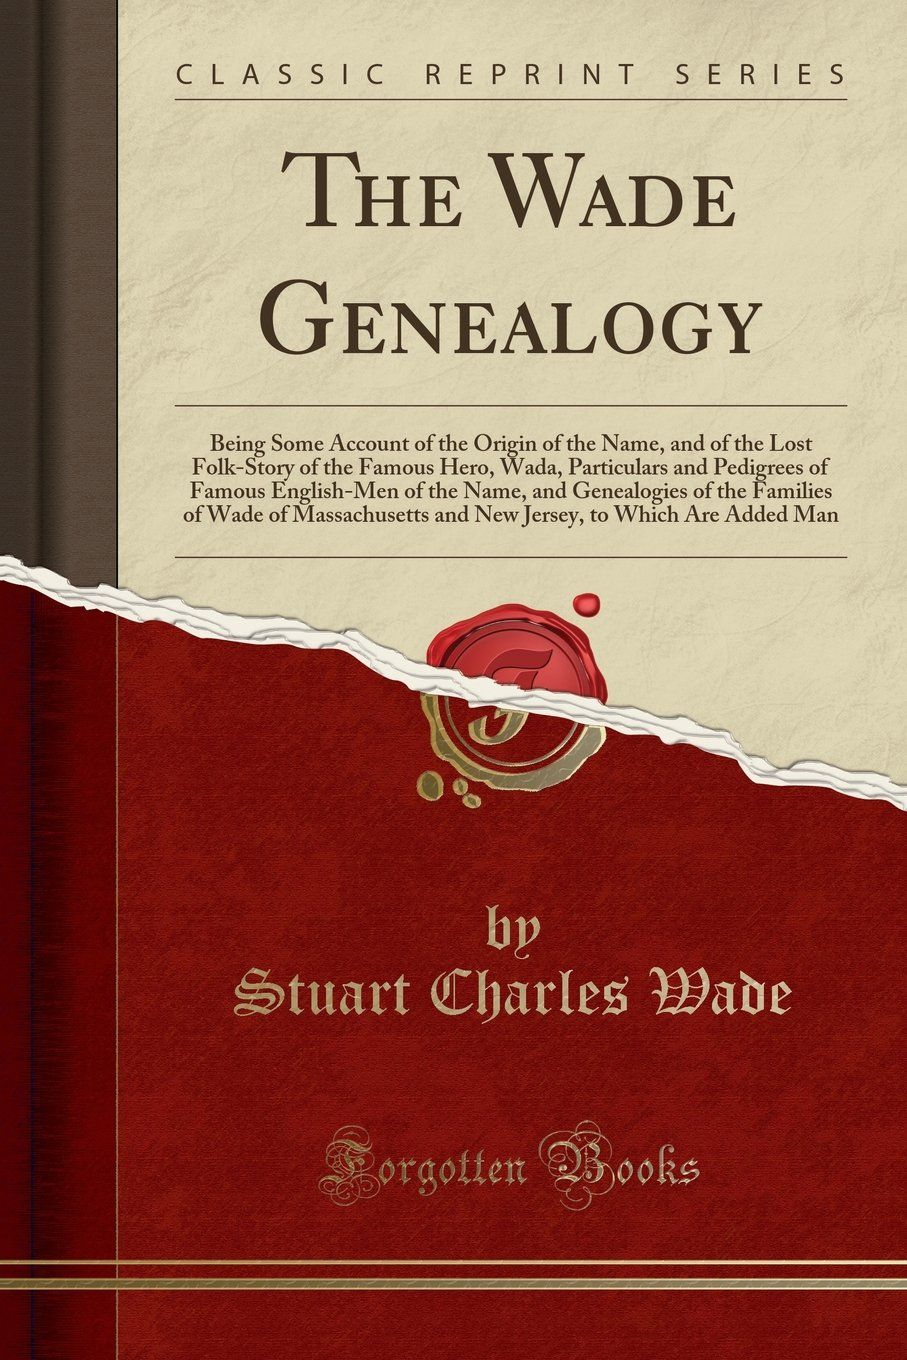 Download The Wade Genealogy: Being Some Account of the Origin of the Name, and of the Lost Folk-Story of the Famous Hero, Wada, Particulars and Pedigrees of ... of Wade of Massachusetts and New Jersey, to PDF